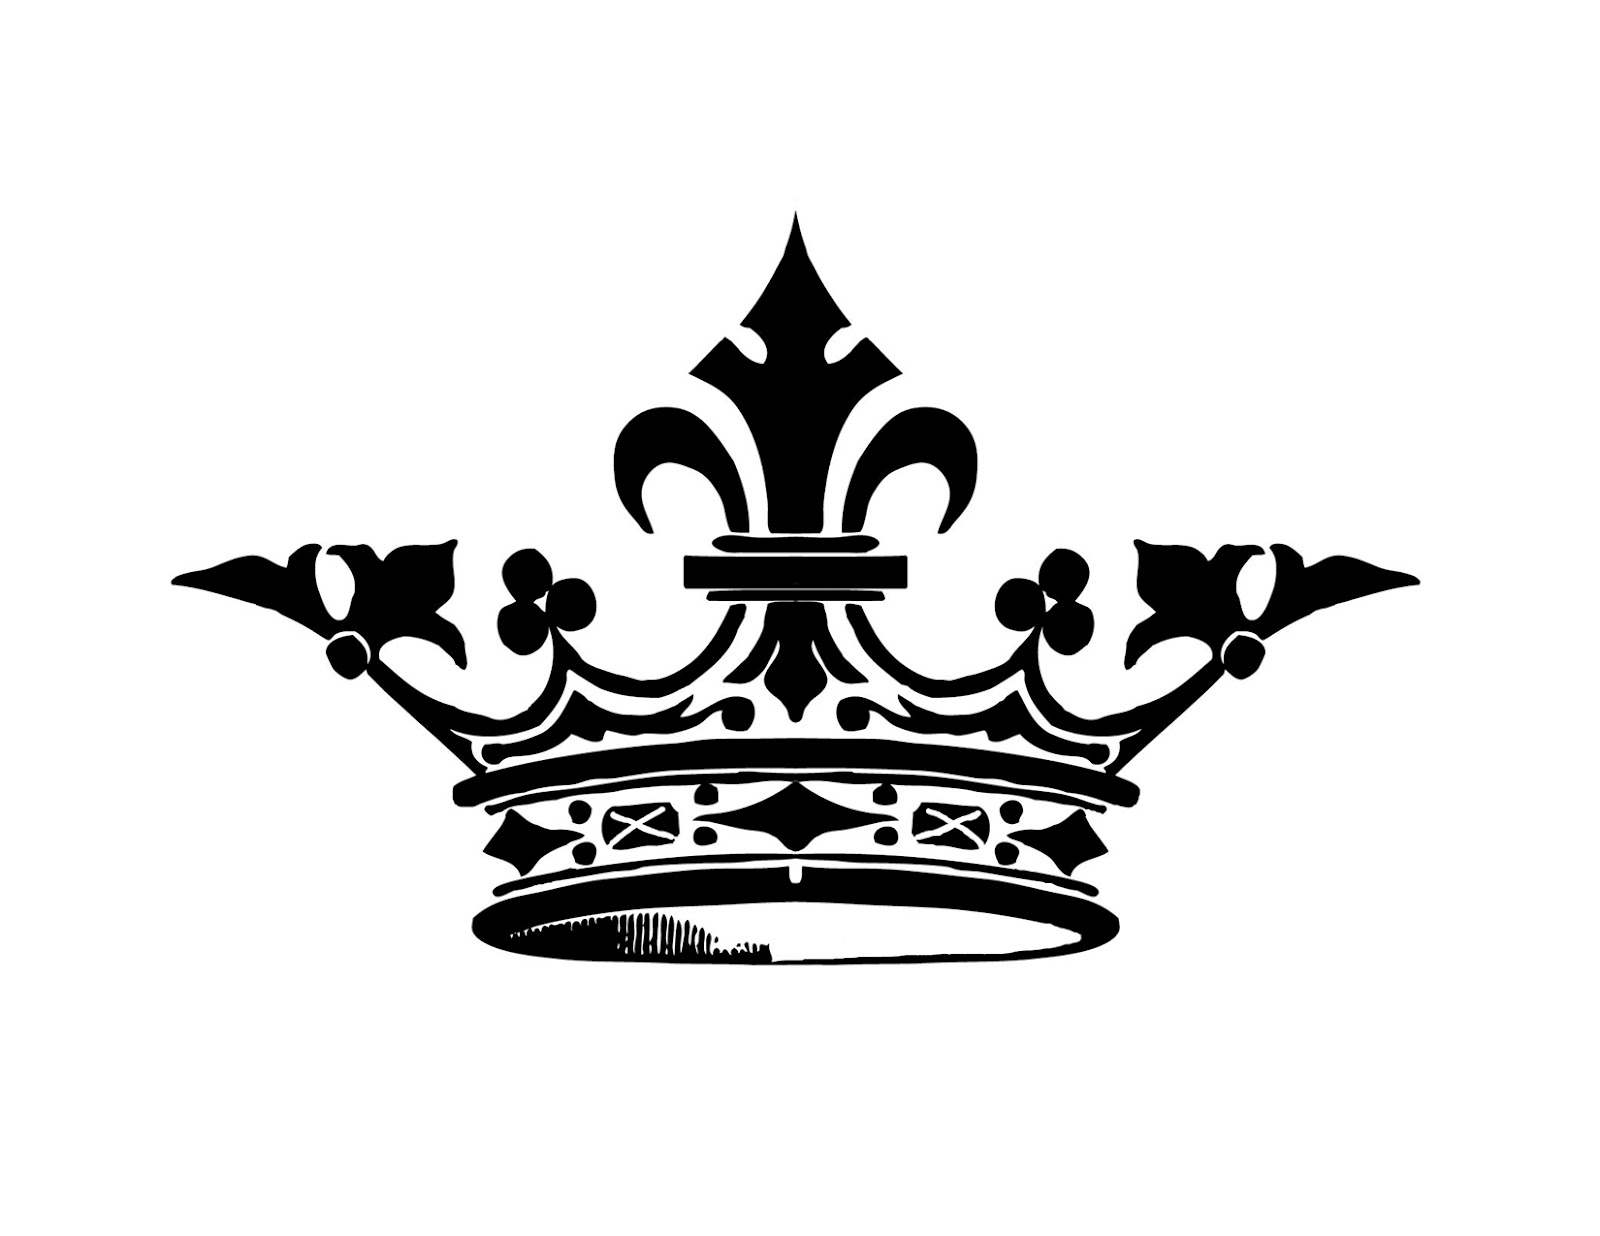 Line Drawing Crown : Drawings of king crowns clipart best